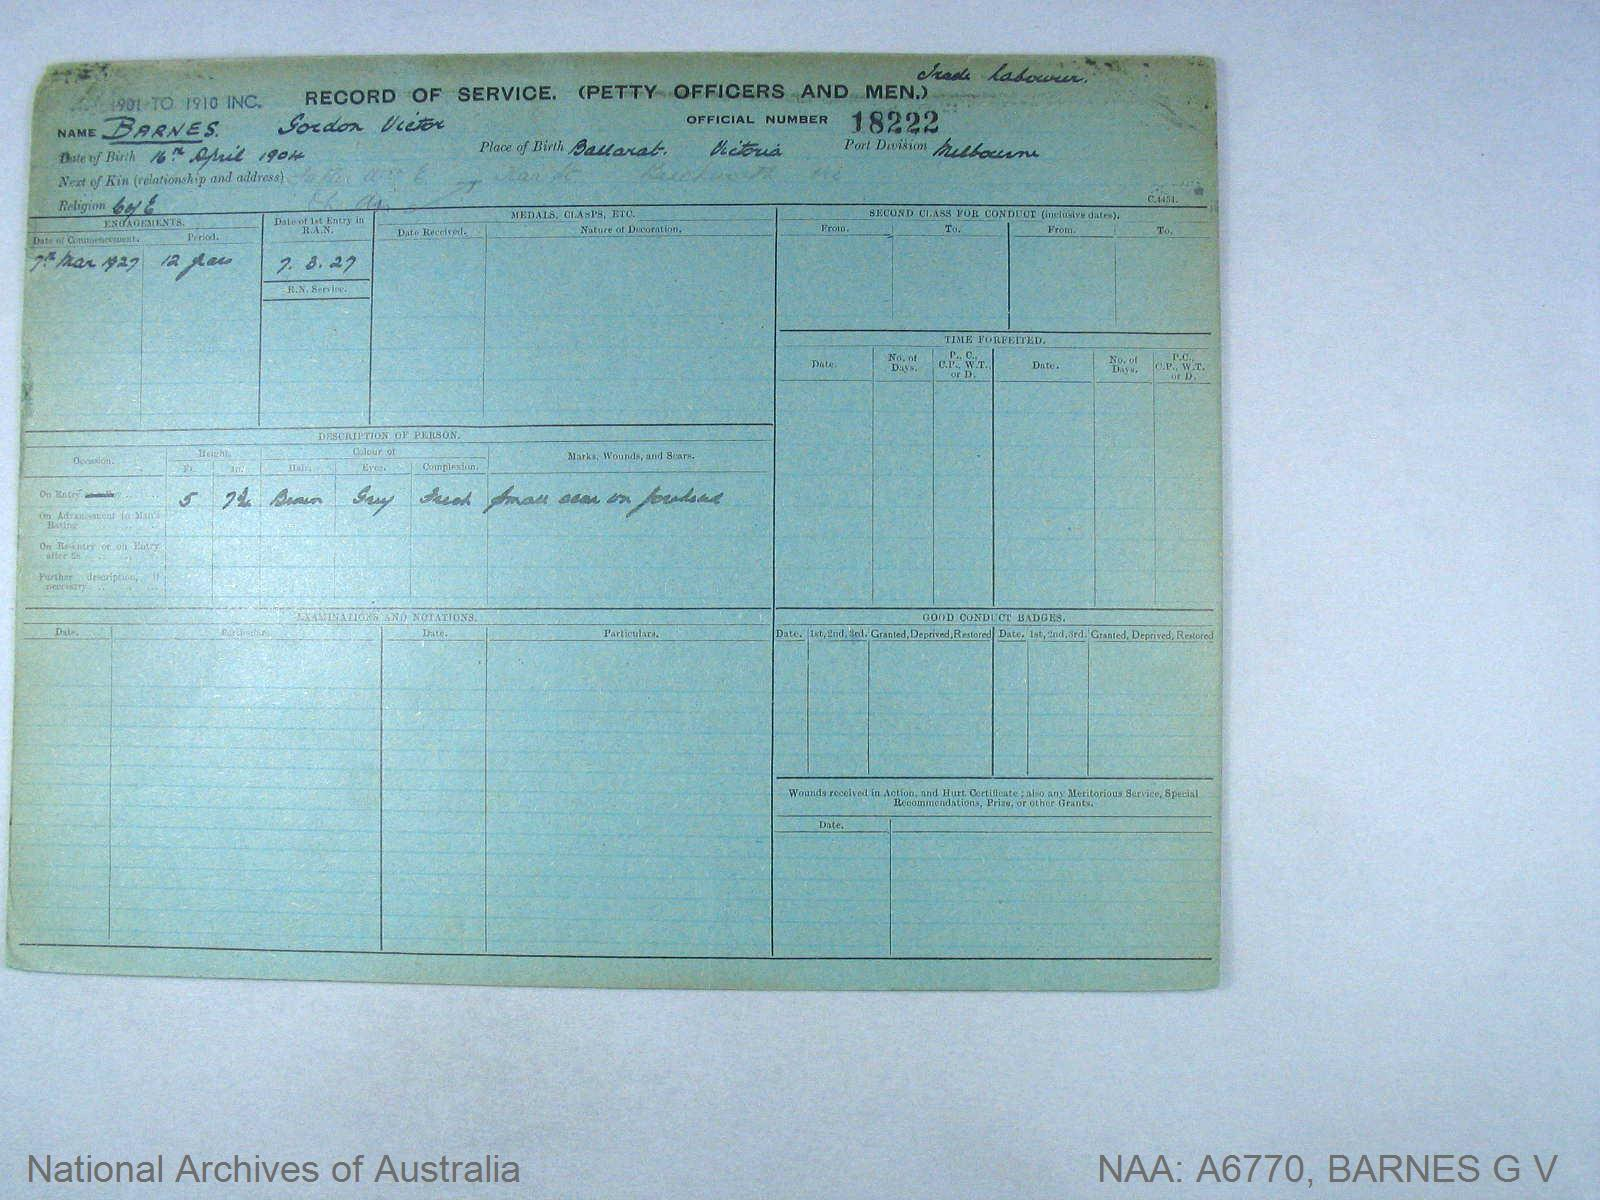 BARNES GORDON VICTOR : Service Number - 18222 : Date of birth - 16 Apr 1904 : Place of birth - BALLARAT VICTORIA : Place of enlistment - MELBOURNE : Next of Kin - BARNES W